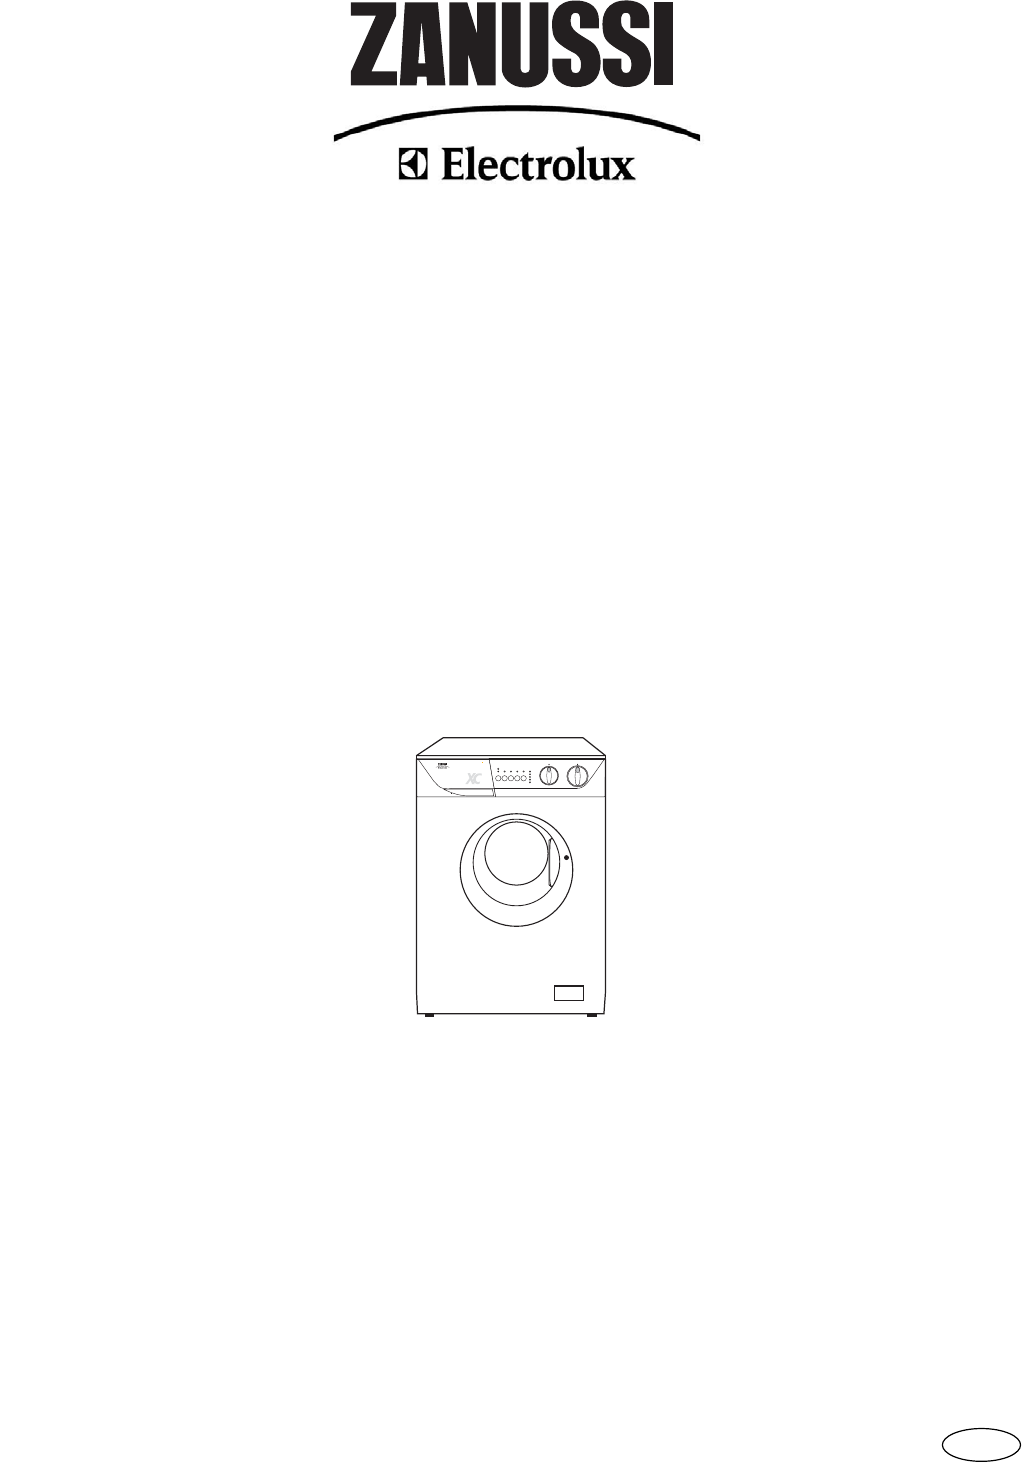 Zanussi washer fx 1465 w user guide manualsonline instruction booklet biocorpaavc Choice Image